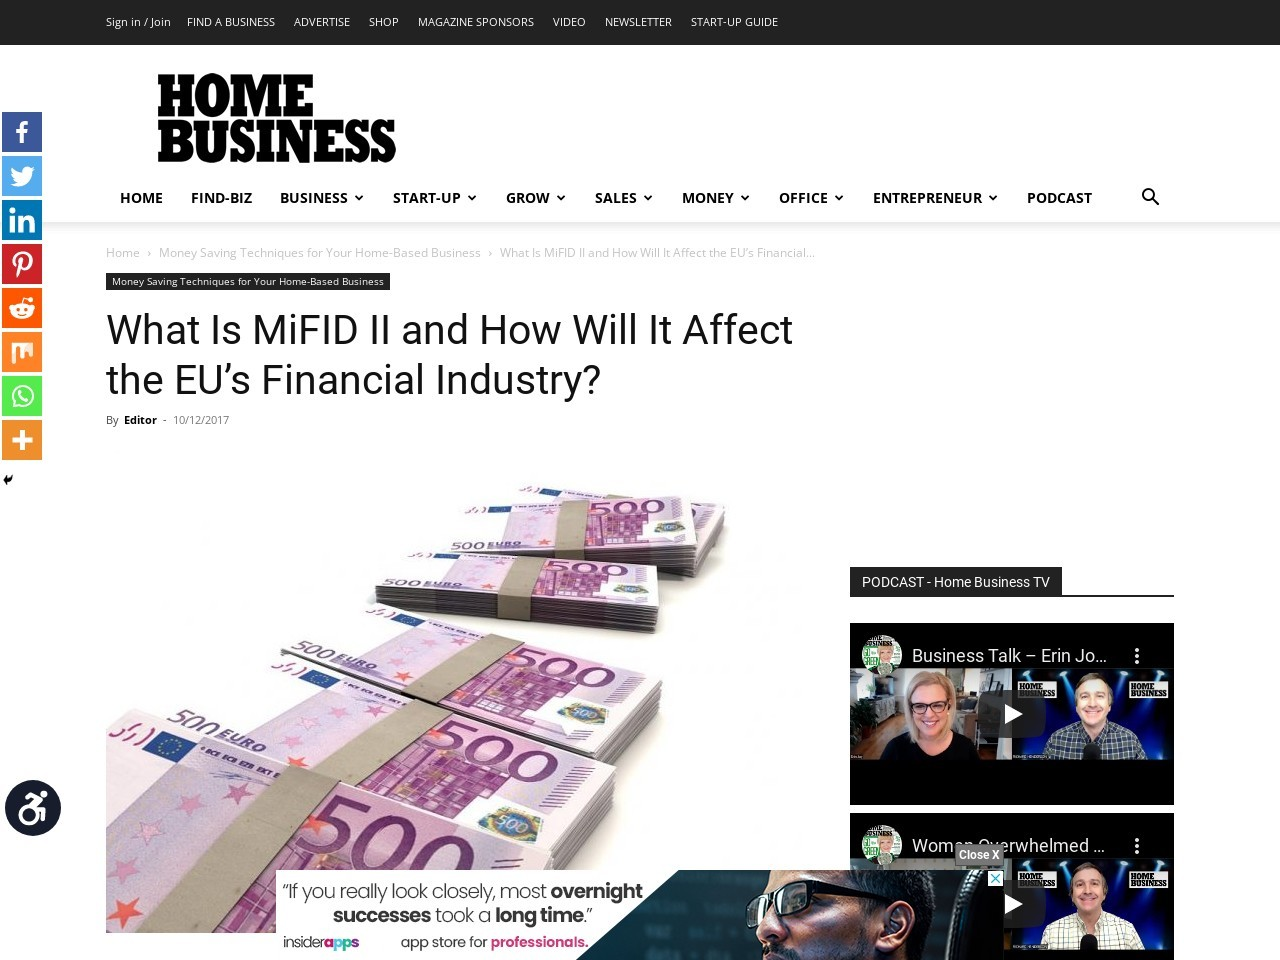 What Is MiFID II and How Will It Affect the EU's Financial Industry?